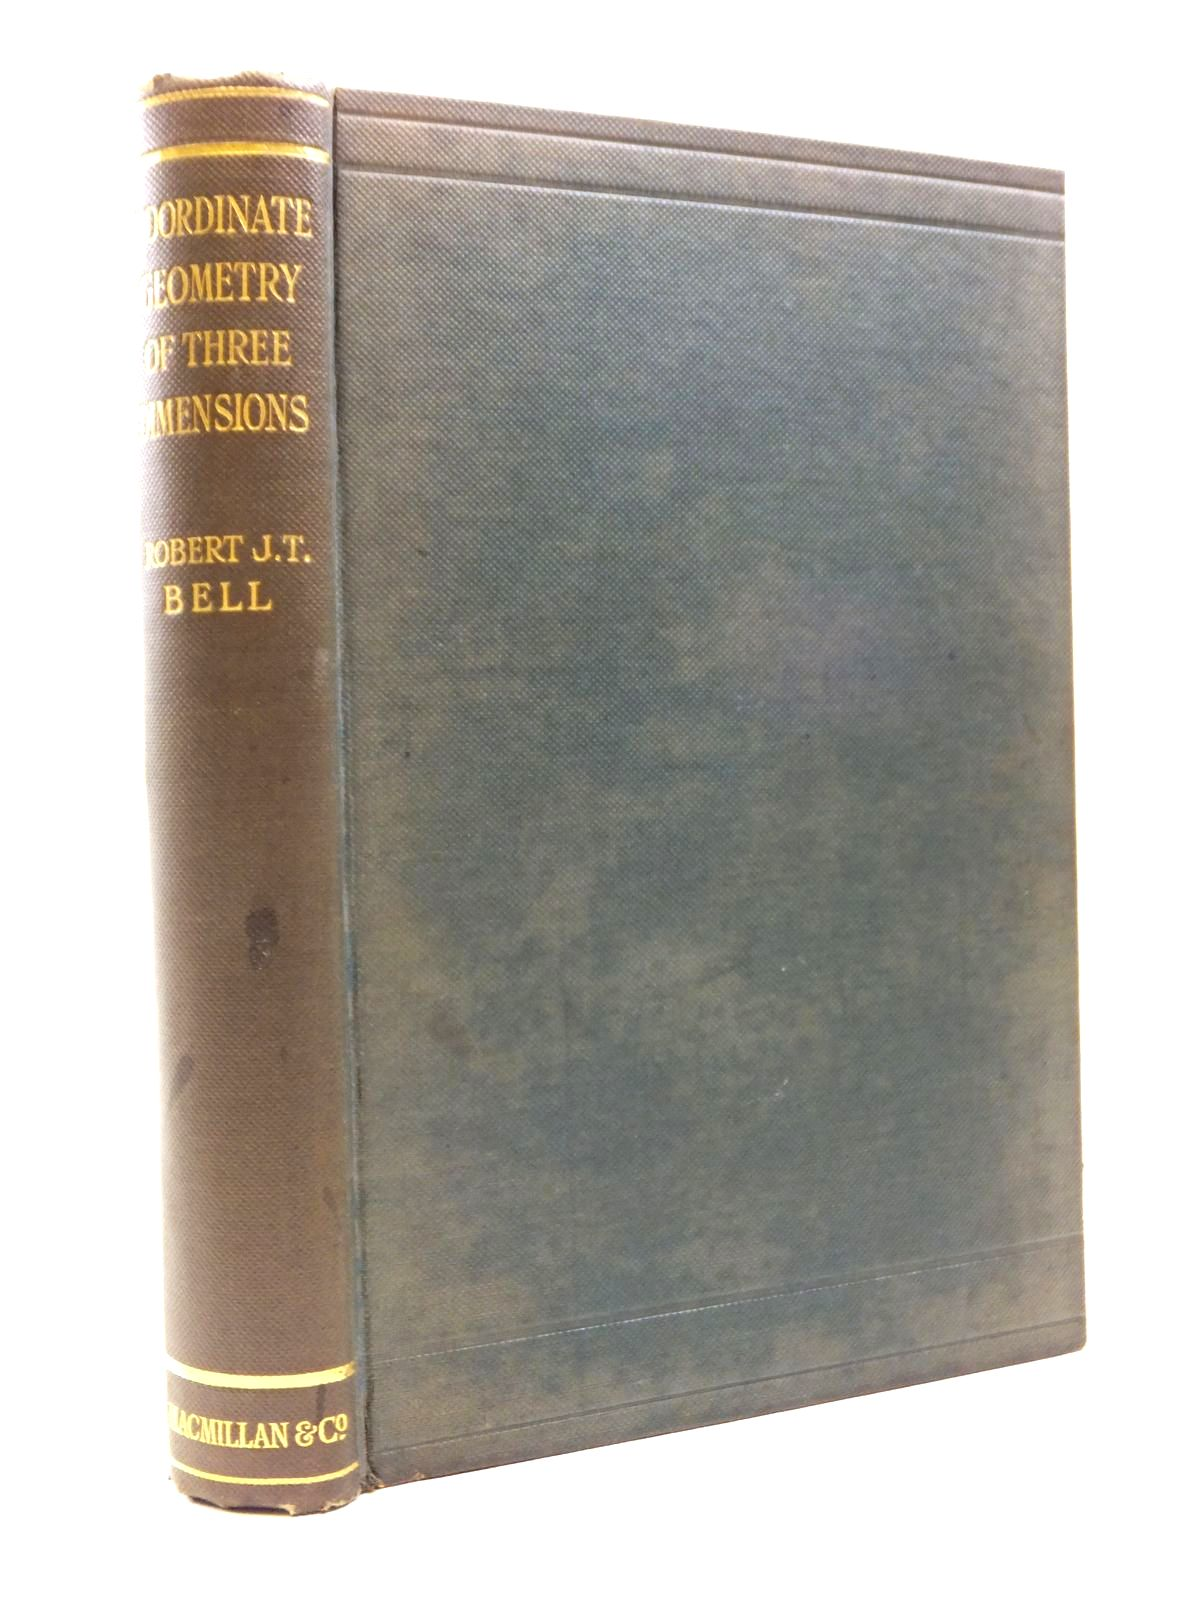 Photo of AN ELEMENTARY TREATISE ON COORDINATE GEOMETRY OF THREE DIMENSIONS written by Bell, Robert J.T. published by Macmillan & Co. Ltd. (STOCK CODE: 1208306)  for sale by Stella & Rose's Books